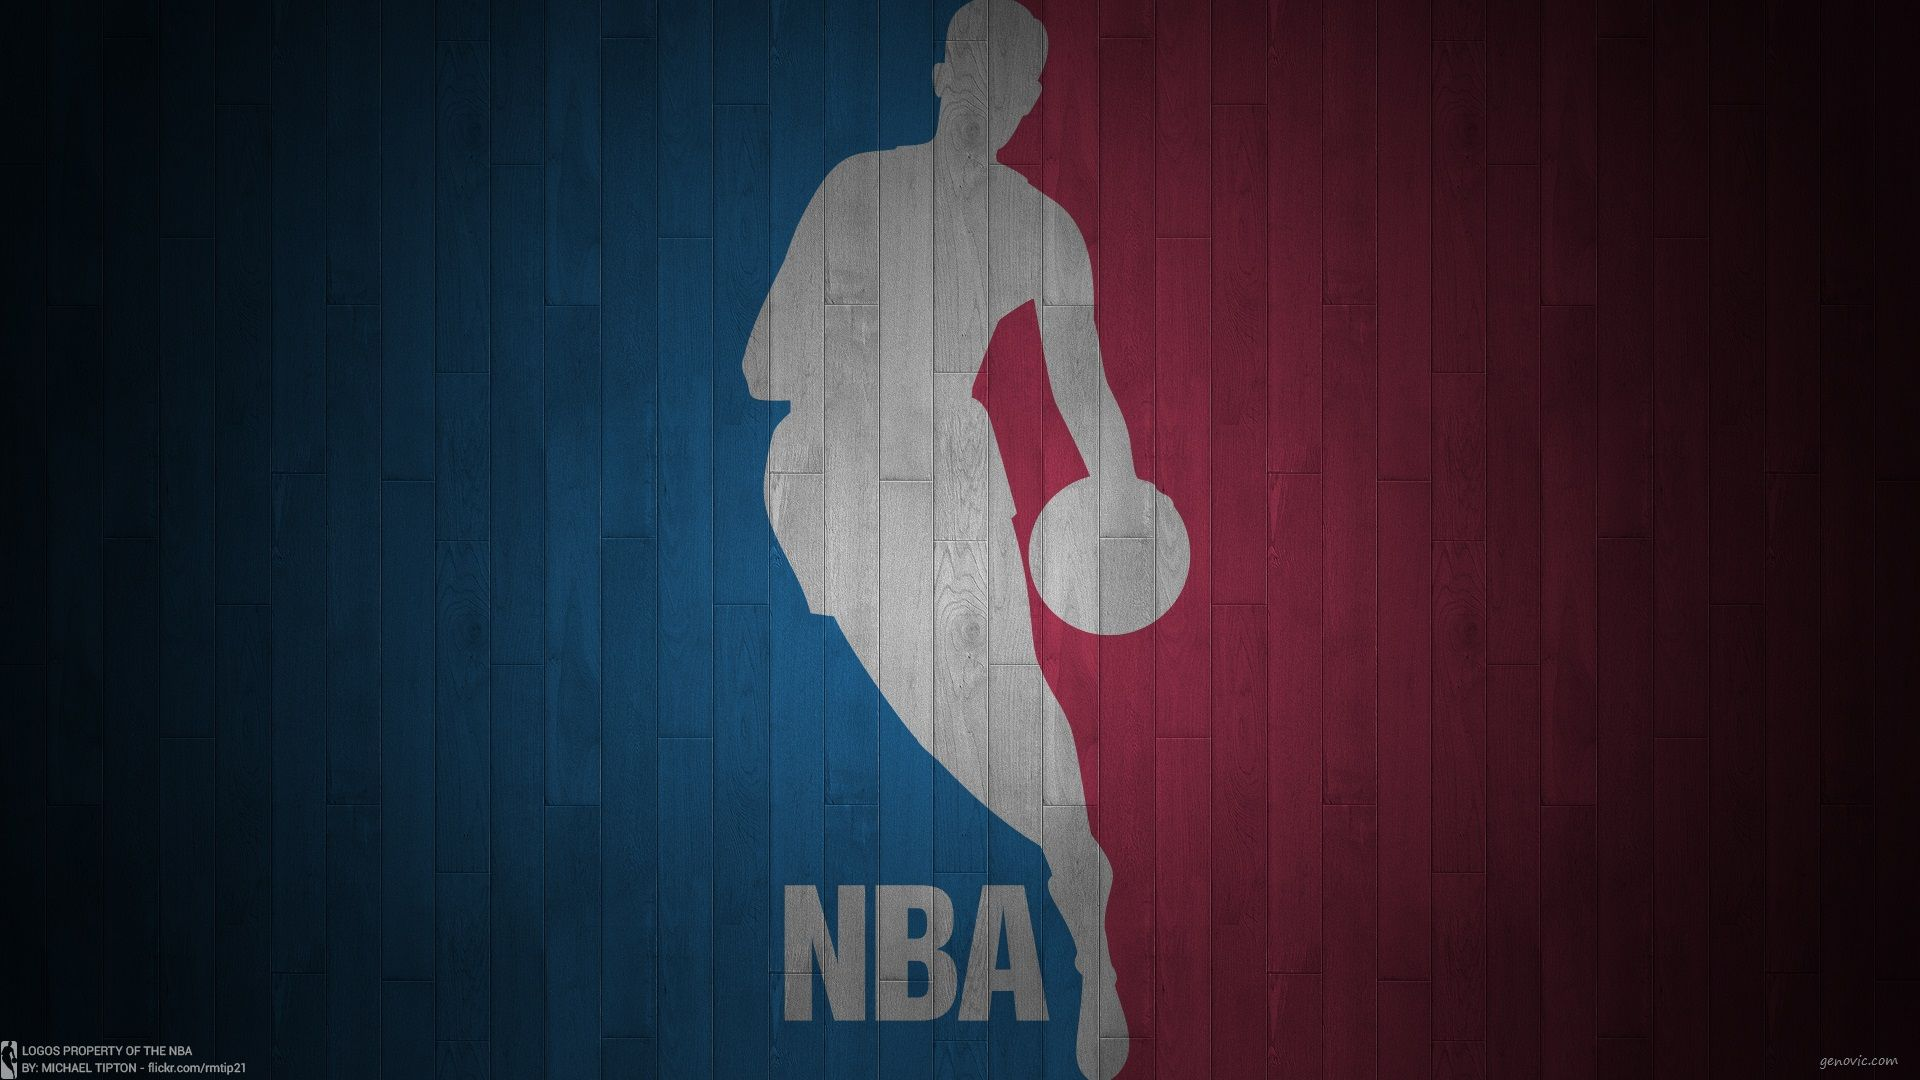 Basketball-NBA-wallpaper-wpc5802514